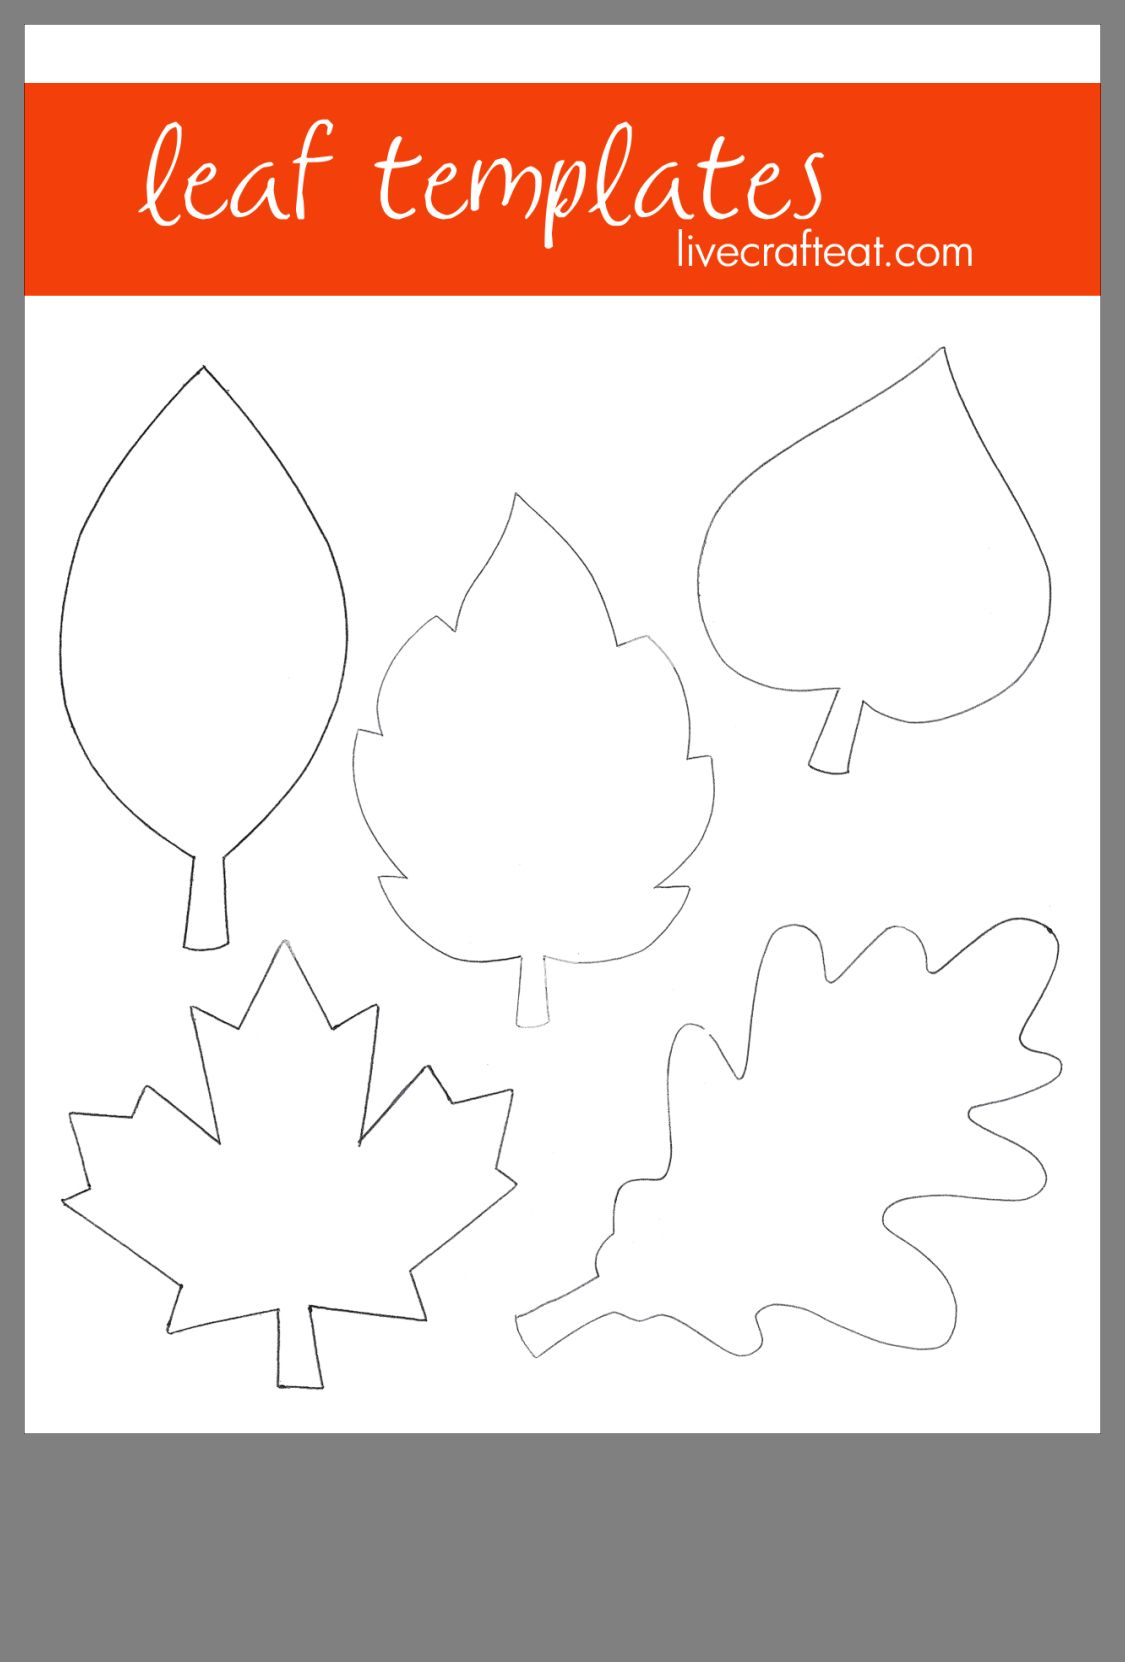 1st Grade Crafts, Printable Leaves, Group Activities, Fall Crafts, Grade 1,